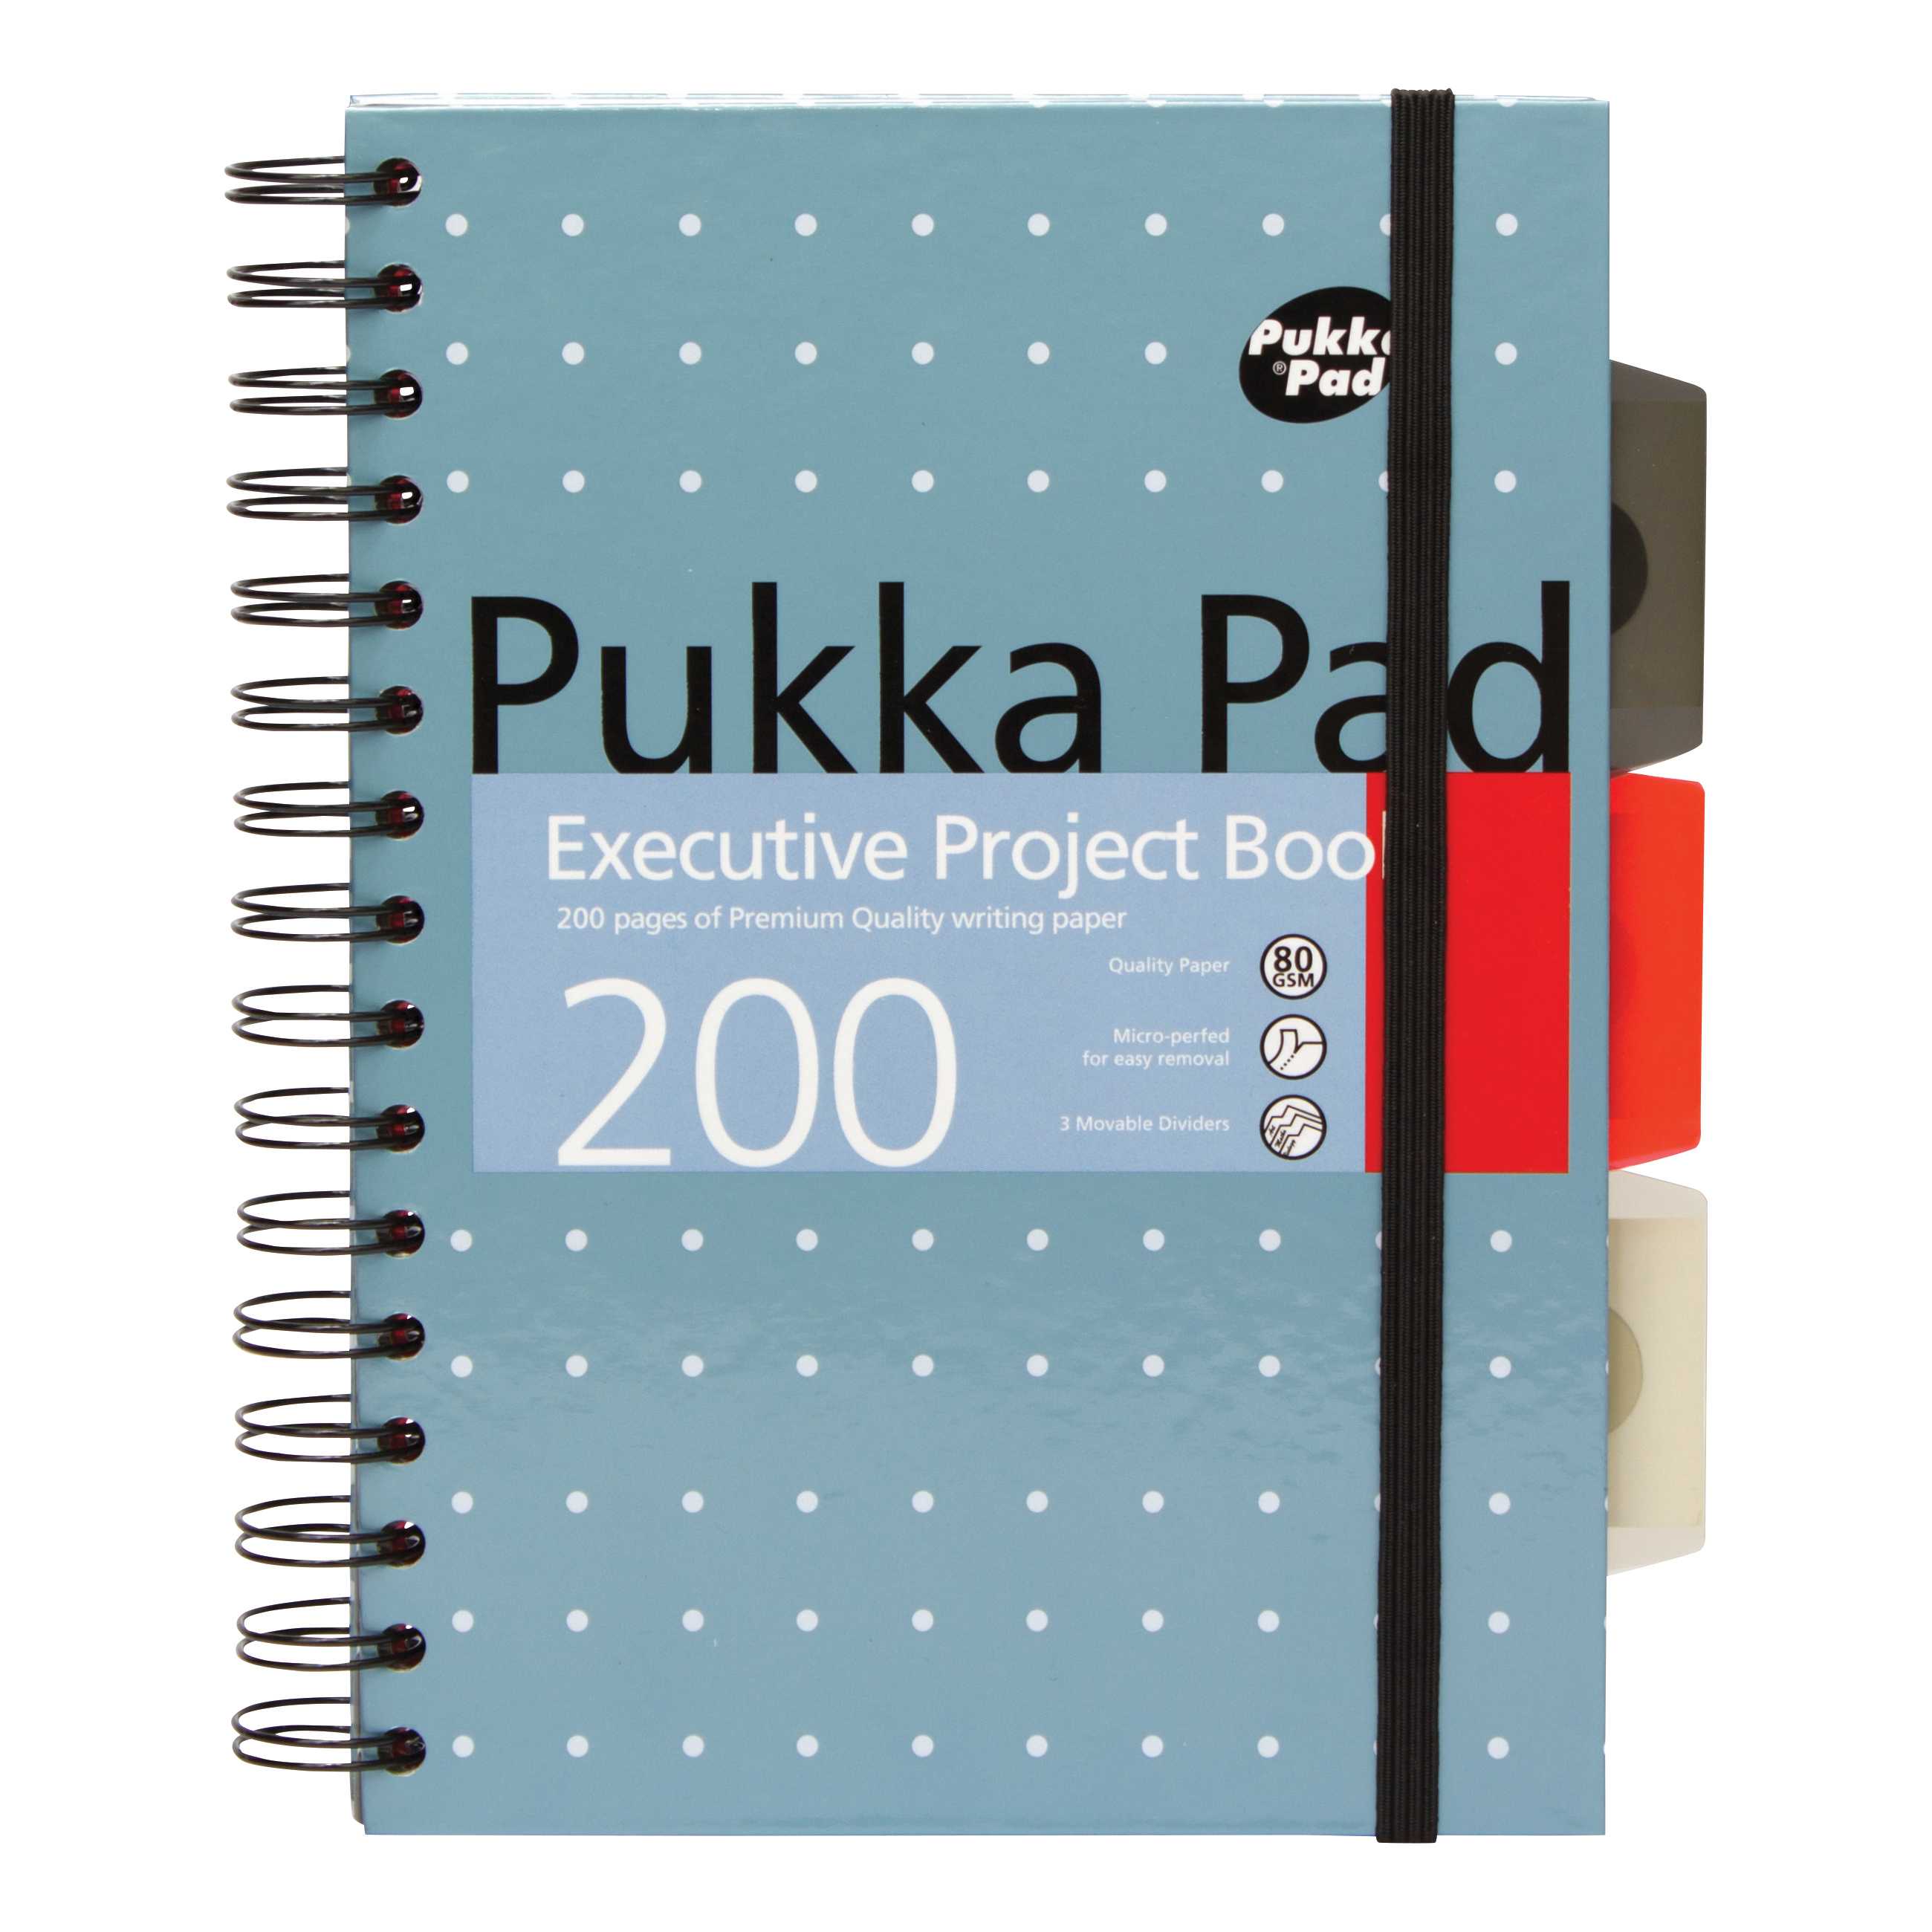 Pukka Pad Executive Project Book A5 Metallic Ref 6336-MET [Pack 3] [x2 & FREE Haribo] Jul-Sep 2018